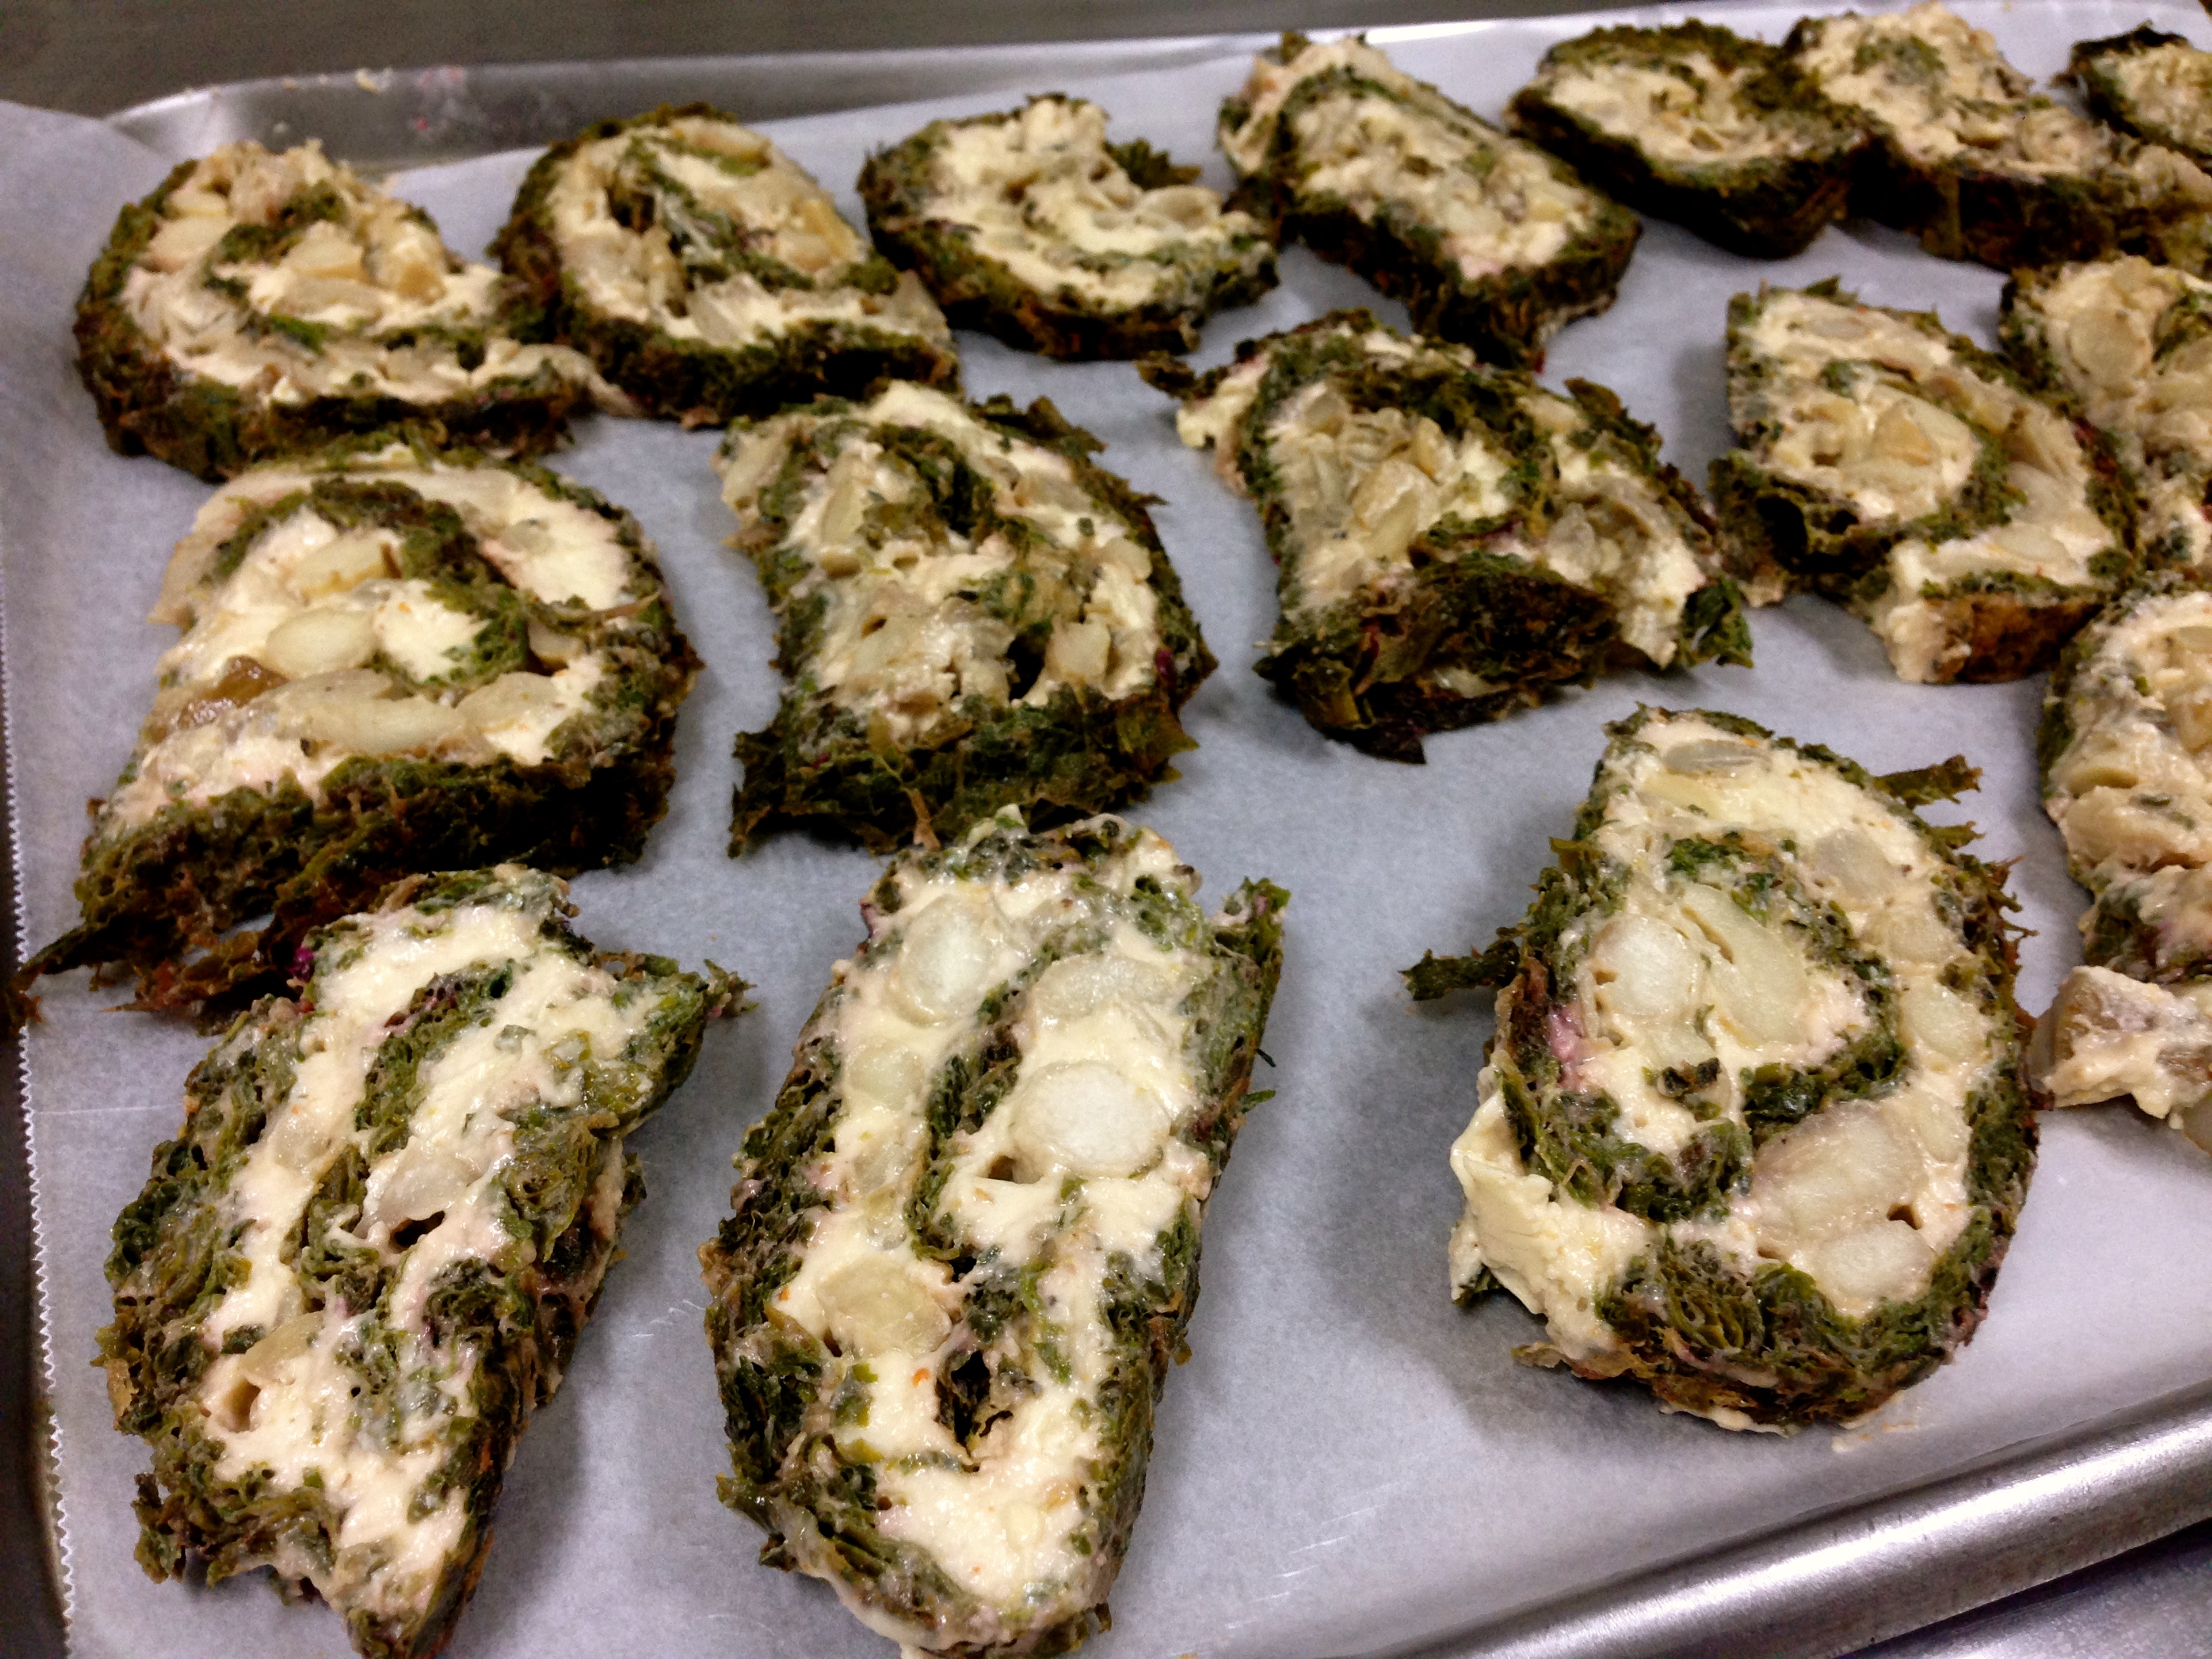 Always a crowd winner, my mom also went the extra mile to introduce this tedious raw roullade and it was received with a gasps and awe. Made of dehydrated spinach and pili cream cheese, this is a fussy raw and glutenfree option to lasagna. Topped with sundried tomatoes. All organic.